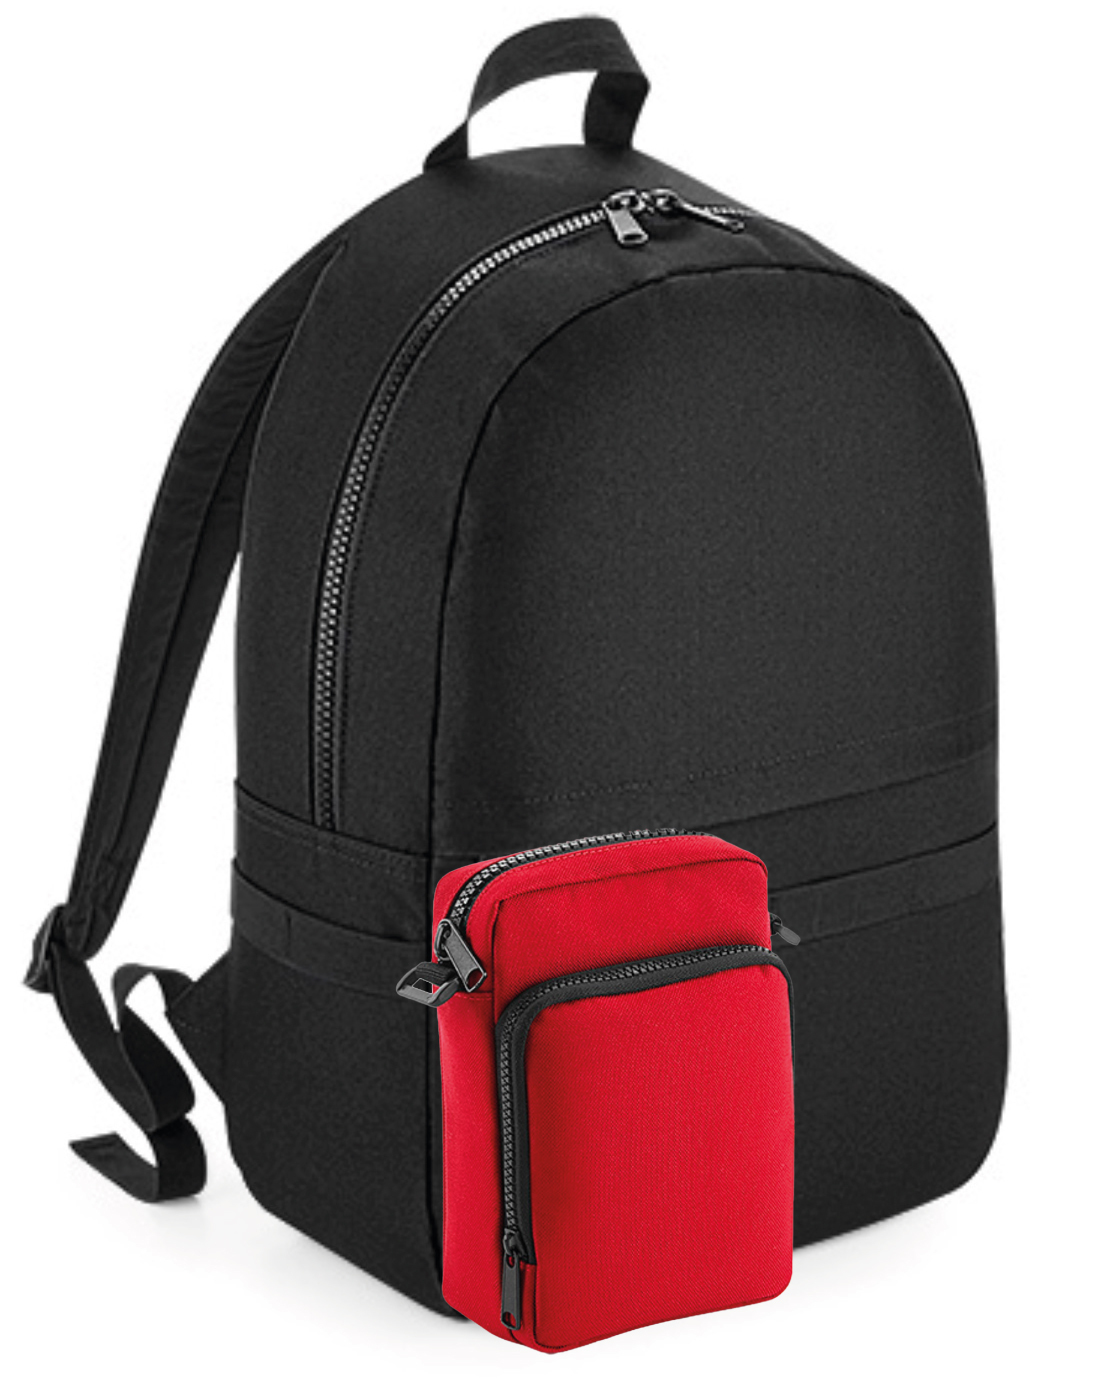 5130_BG240_Modulr_20-Litre-Backpack_Black_red_001